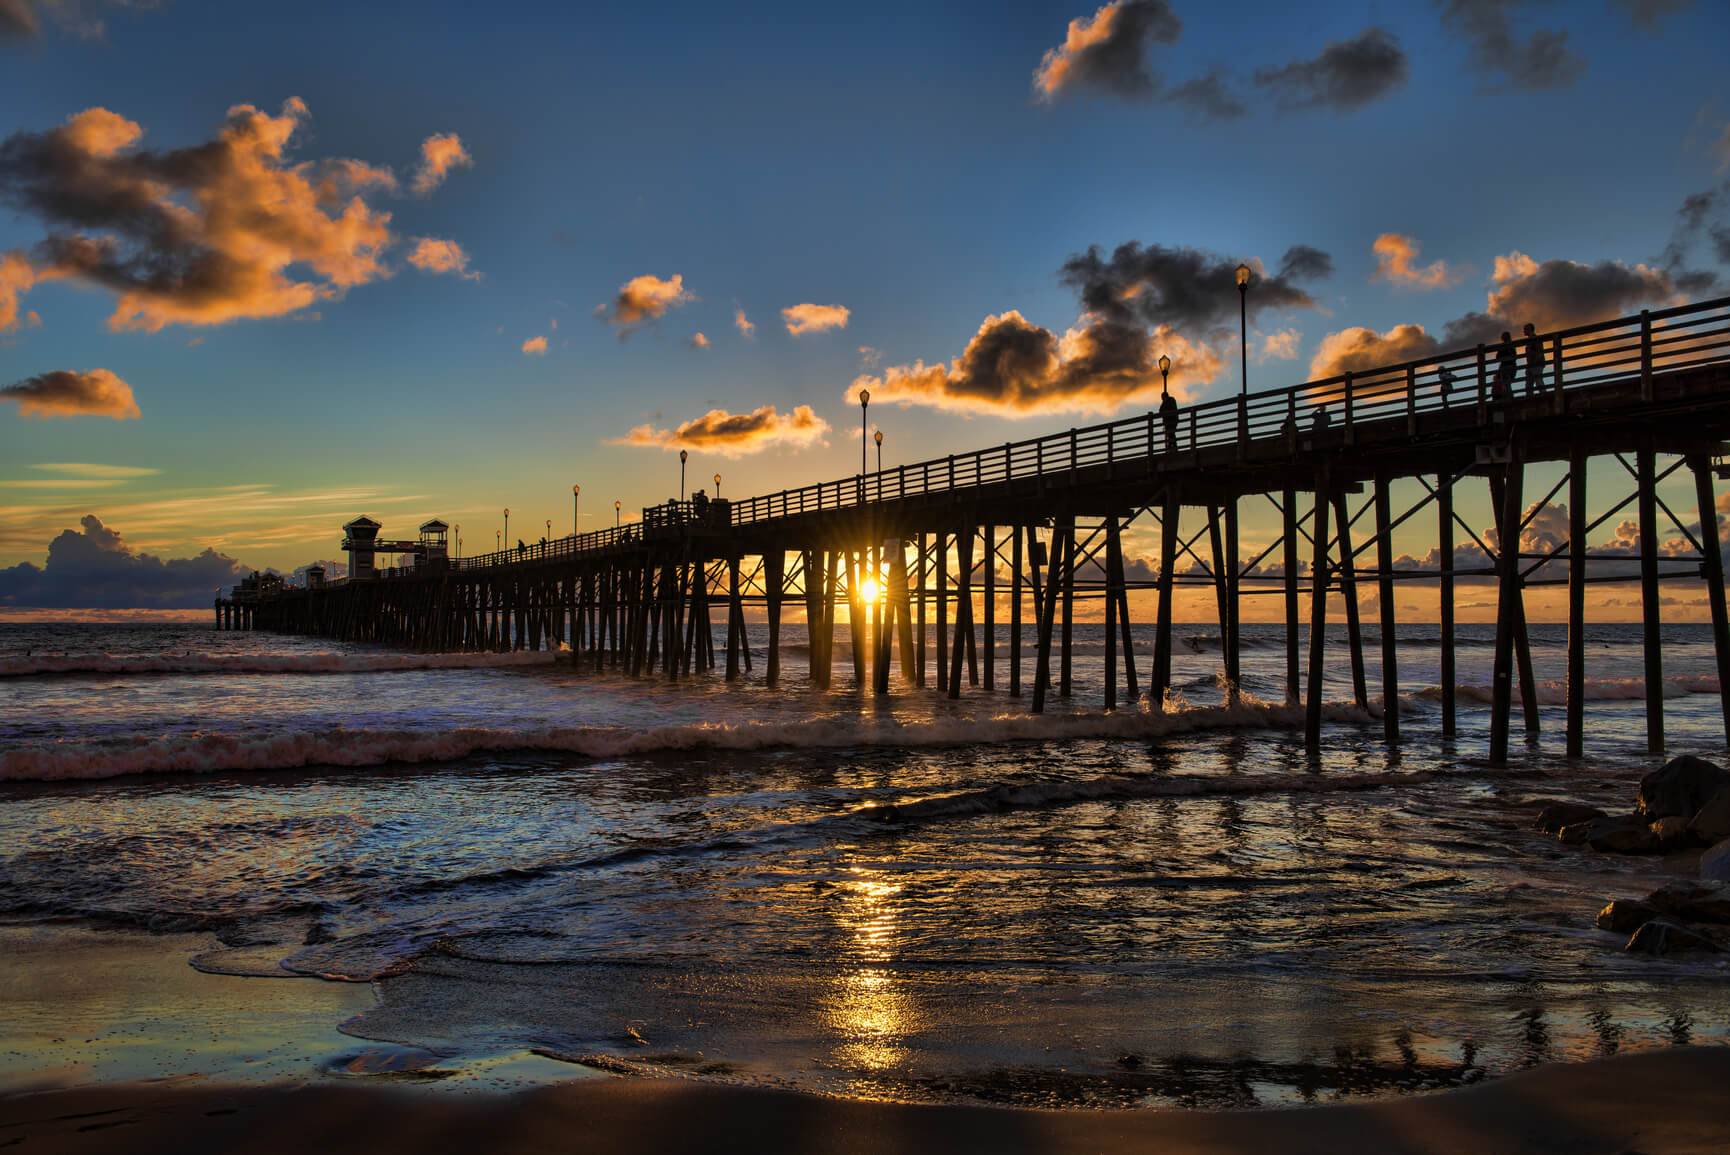 Non-stop from Mexico City, Mexico to San Diego, California for only $293 USD roundtrip